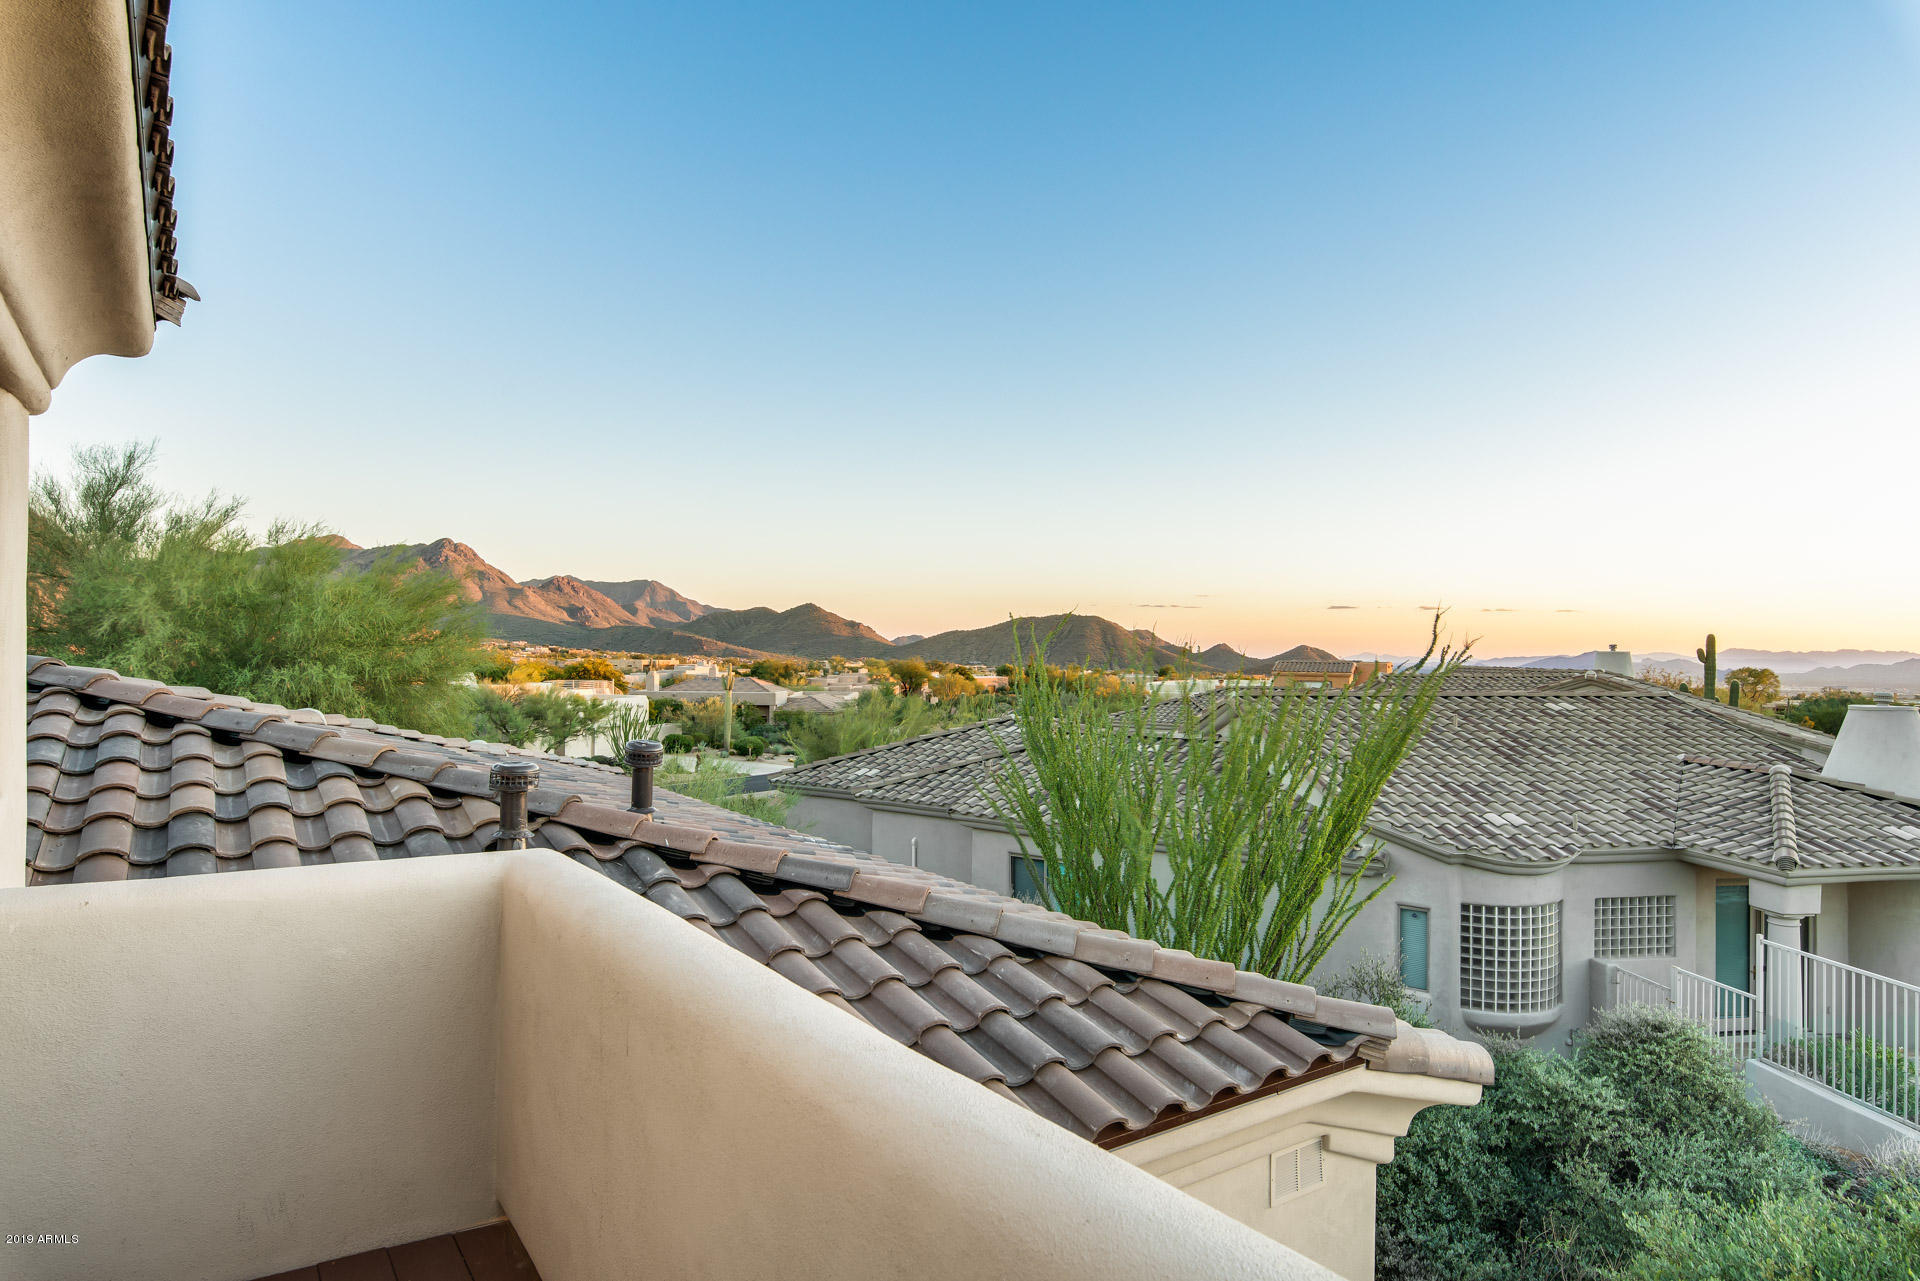 MLS 5868142 10452 E QUARTZ ROCK Road, Scottsdale, AZ 85255 Scottsdale AZ Gated